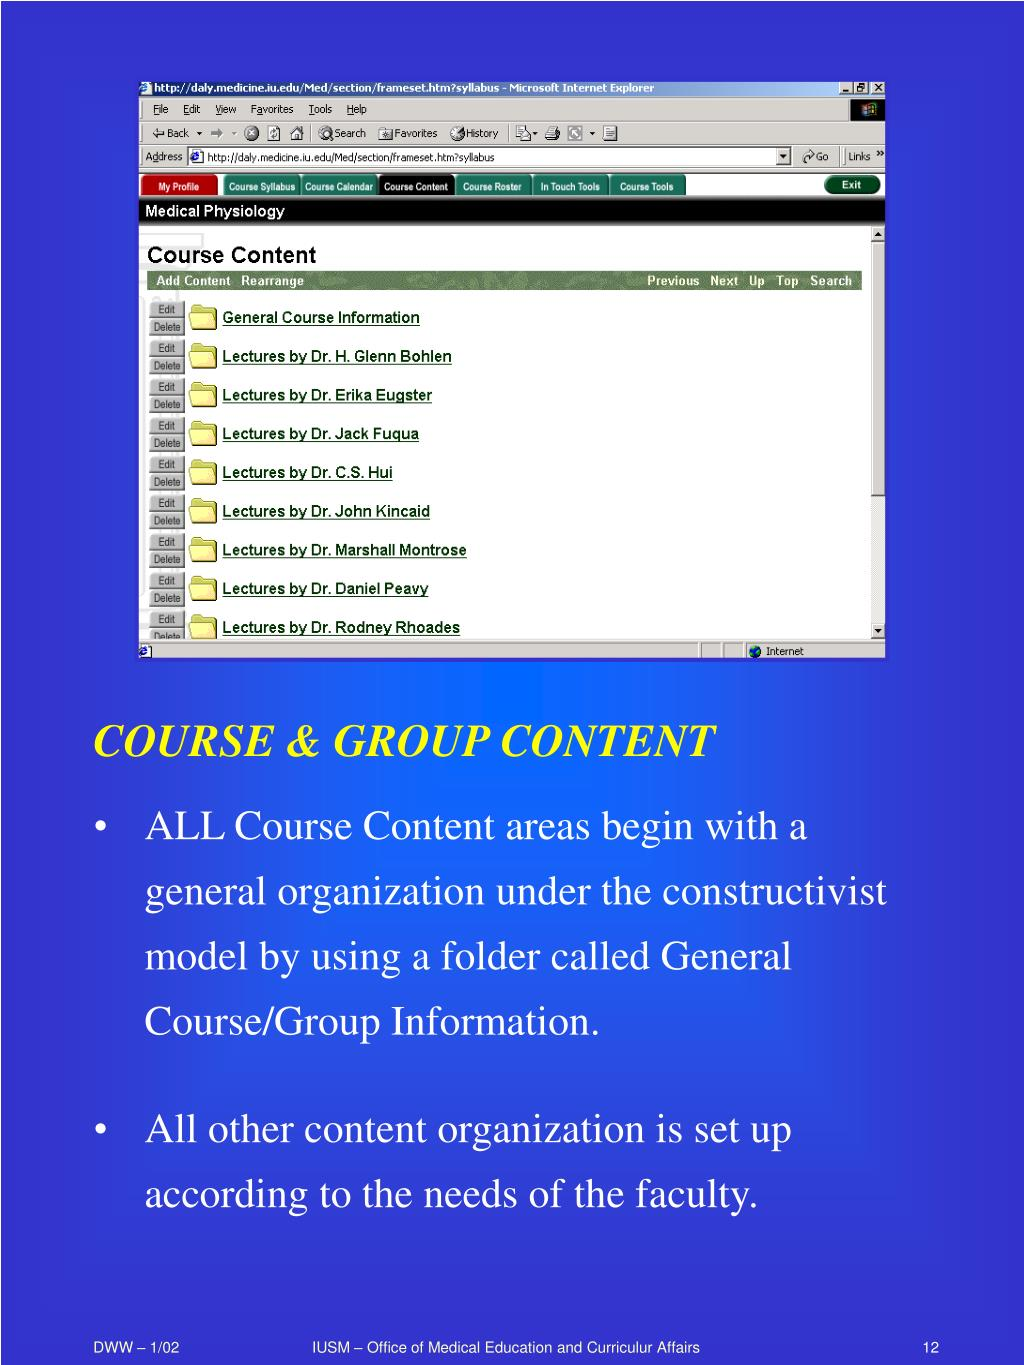 COURSE & GROUP CONTENT